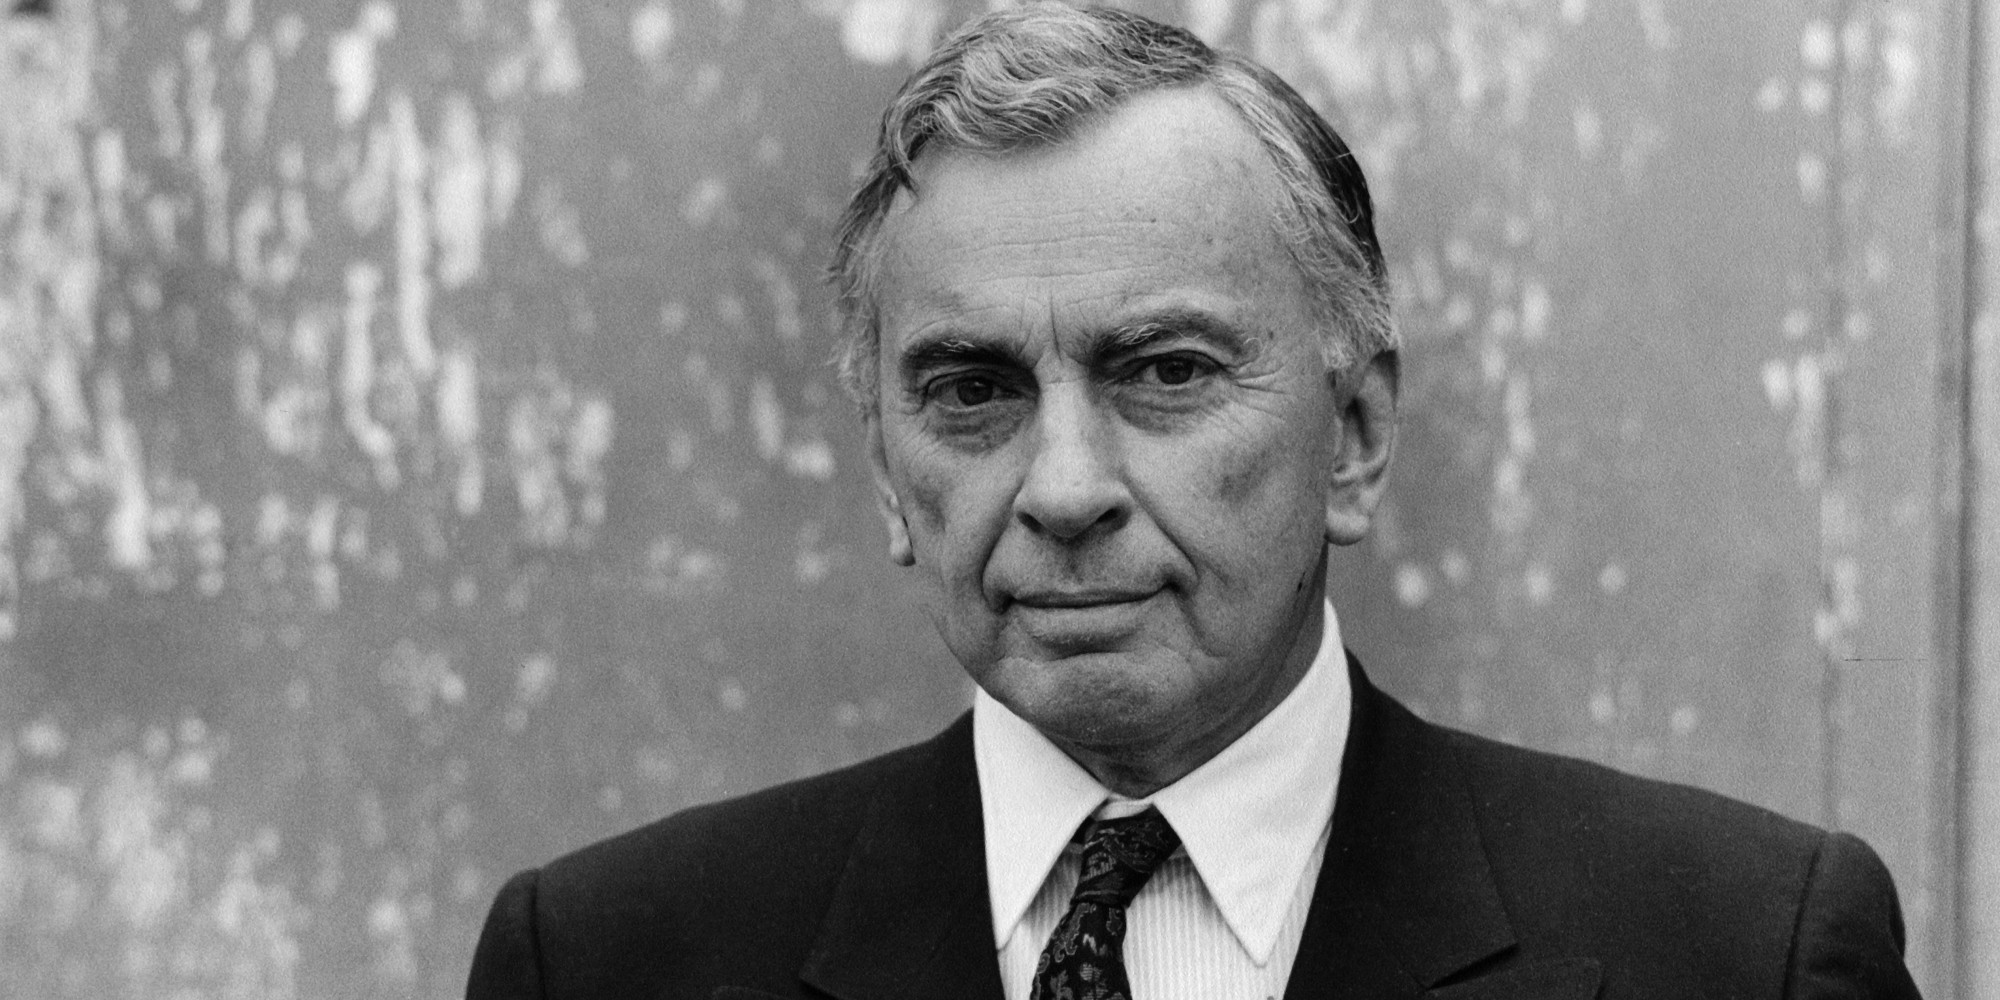 at home essays gore vidal Essays related to gore vidal essay response 1 gore vidal's essay drugs shows how he felt about the legalization issue for home use, applying the sous.